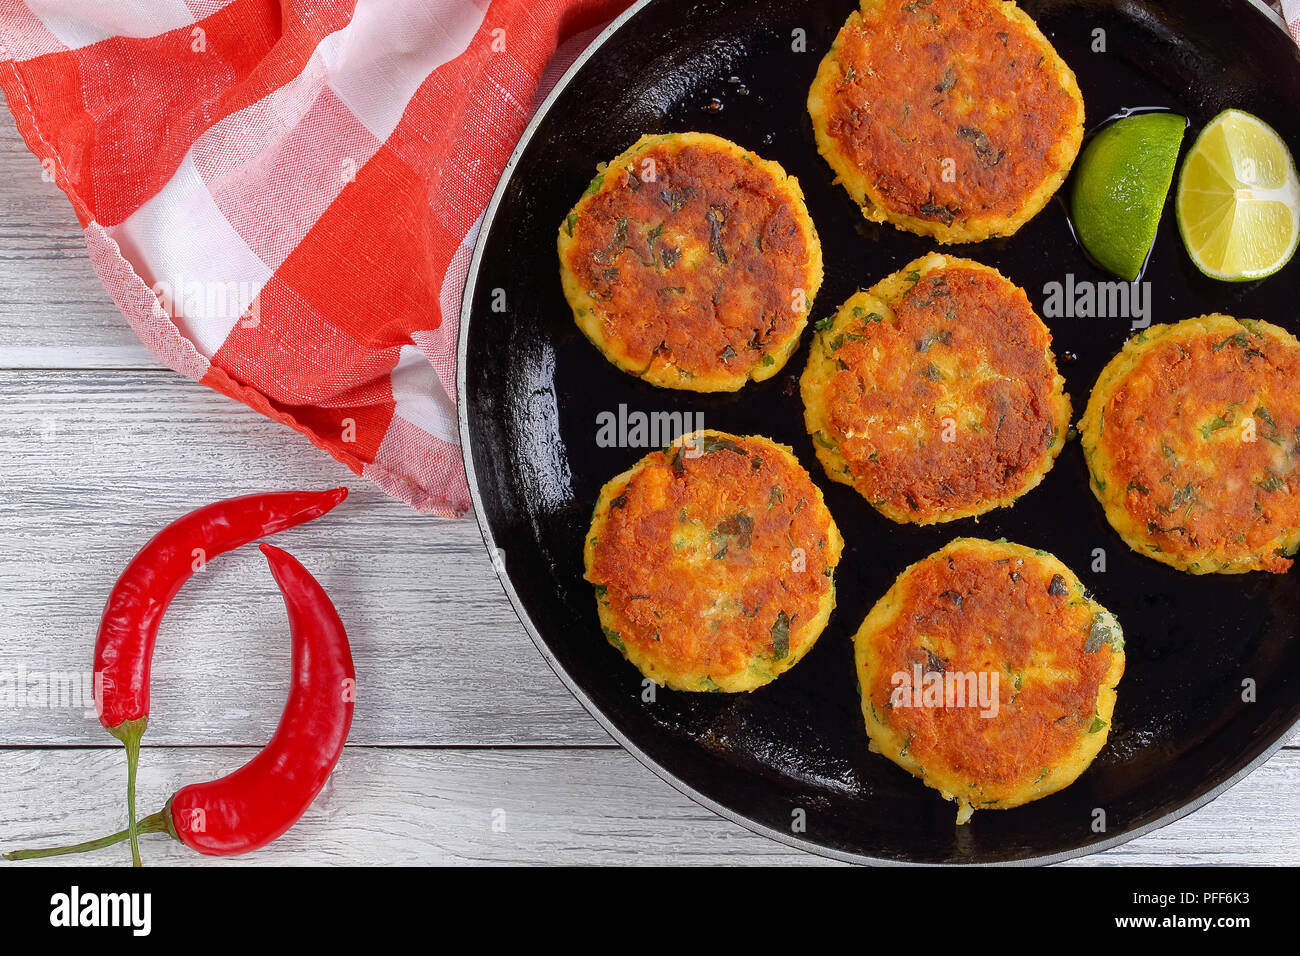 delicious fresh fried homemade fish cakes with mashed potato on skillet with lime slices, on wooden table with kitchen towel, chili peppers, authentic - Stock Image